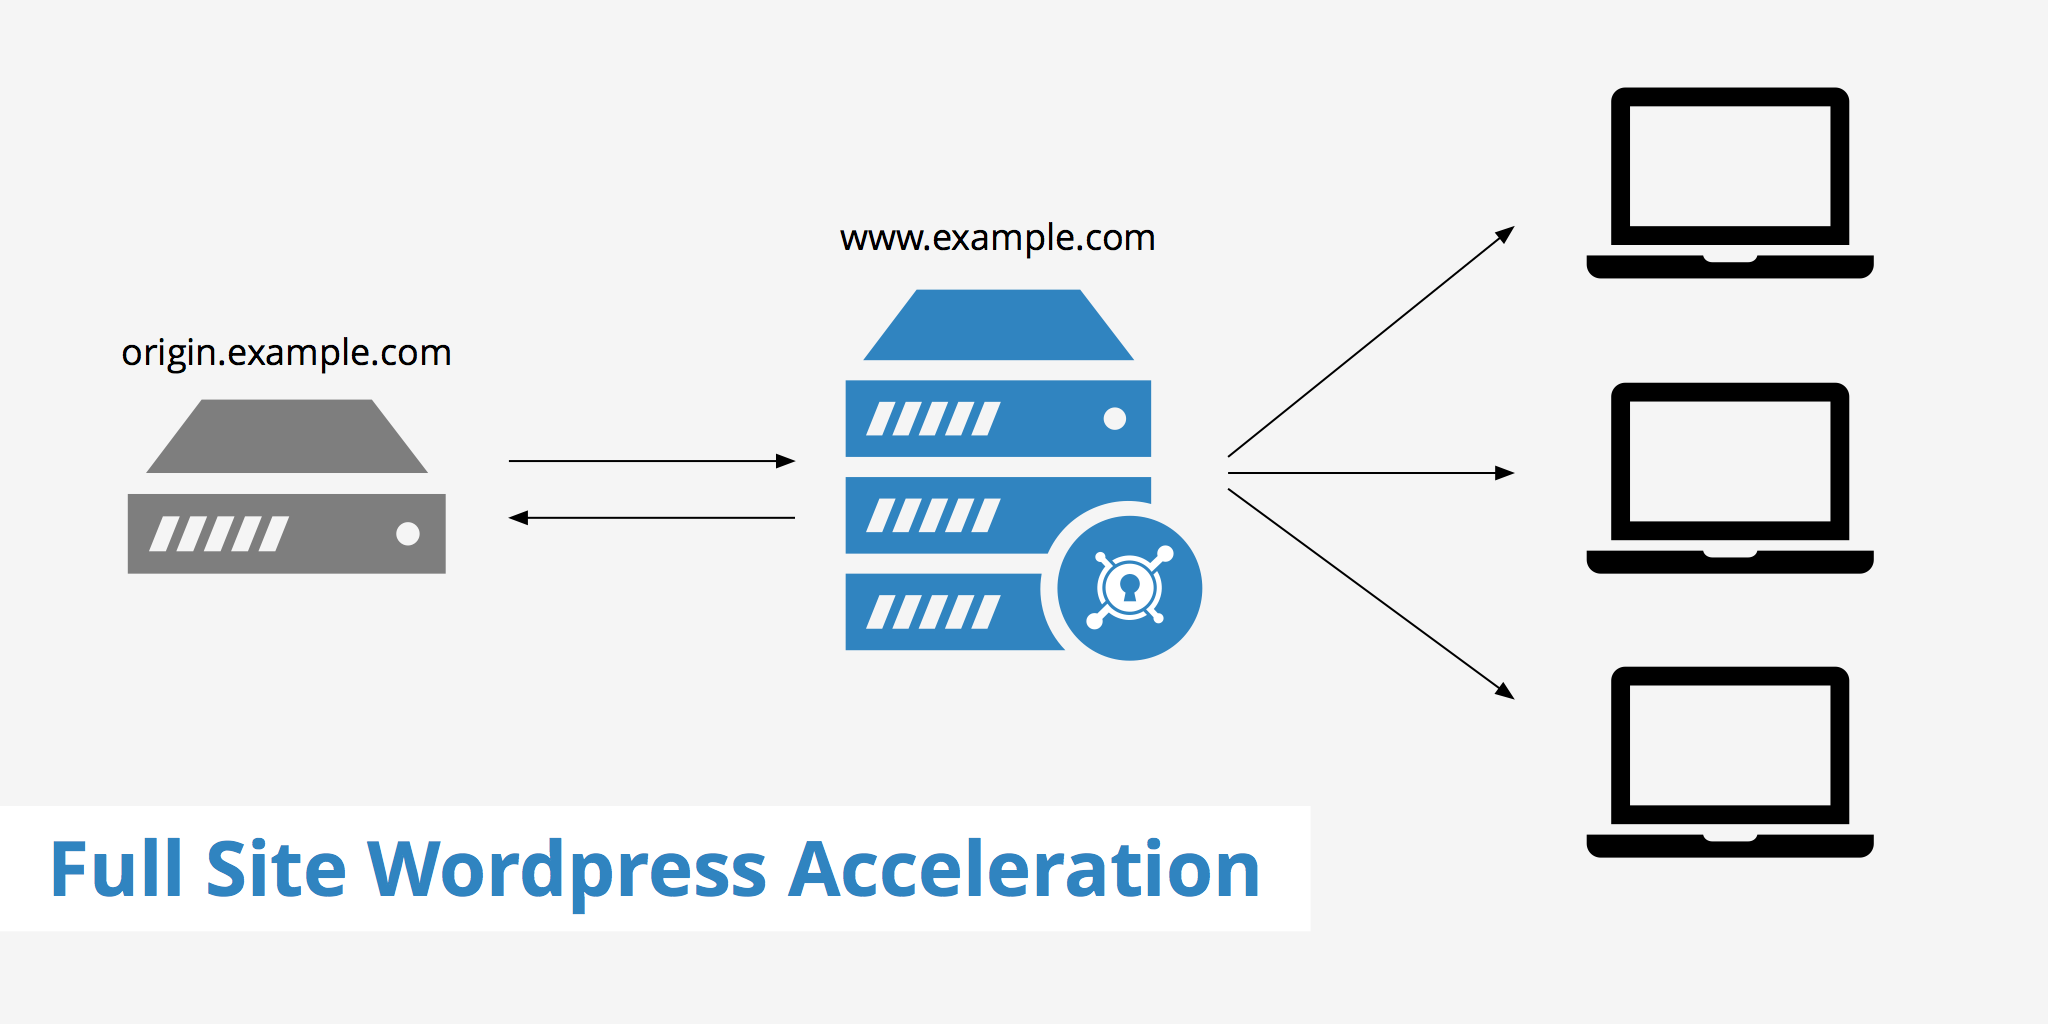 Full Site WordPress Acceleration